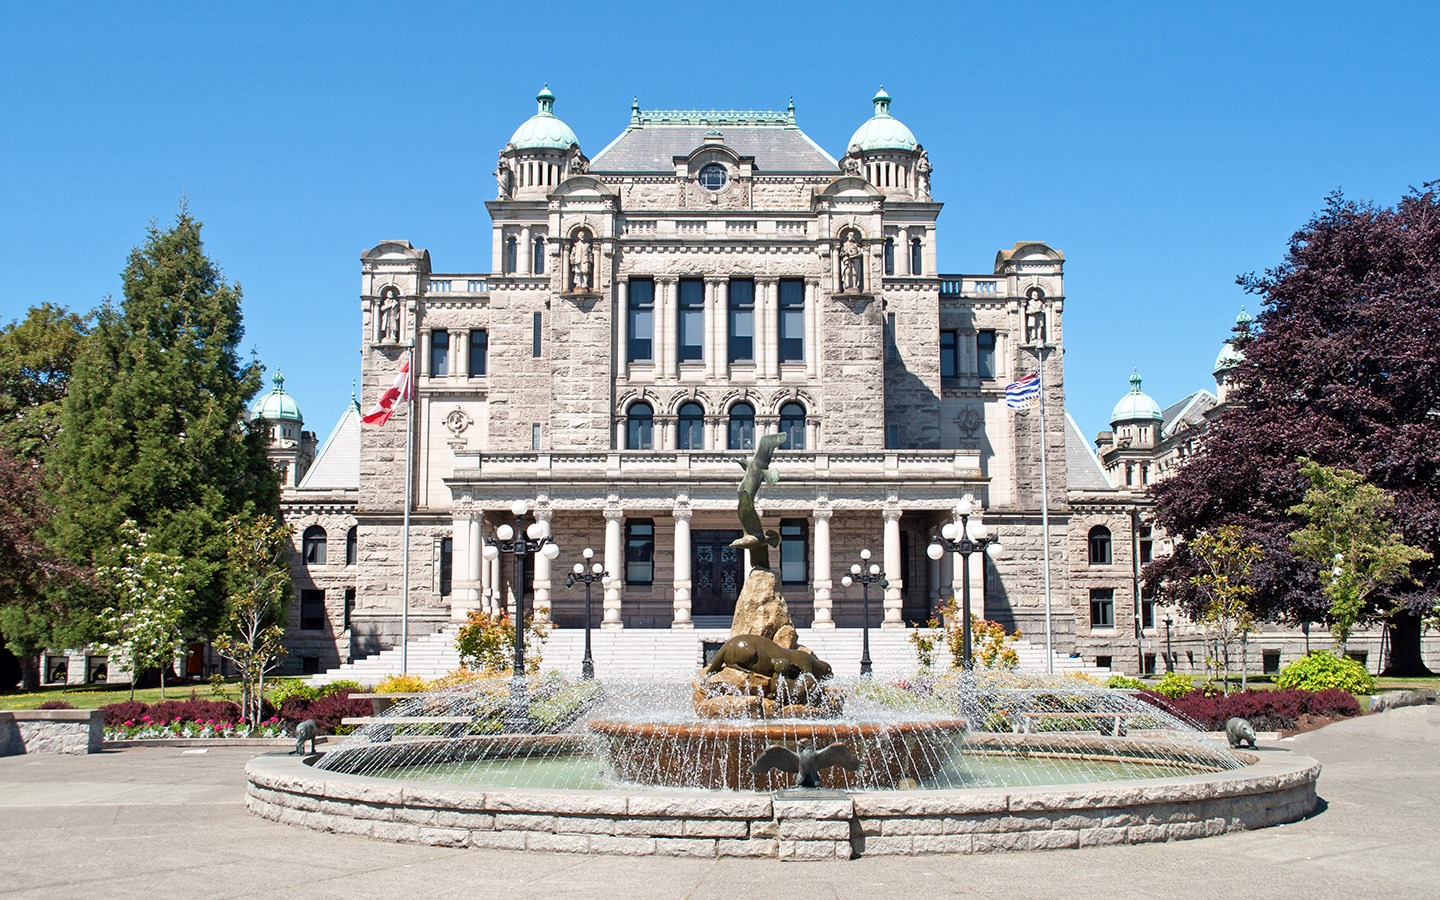 The British Columbia legislature building, Canada